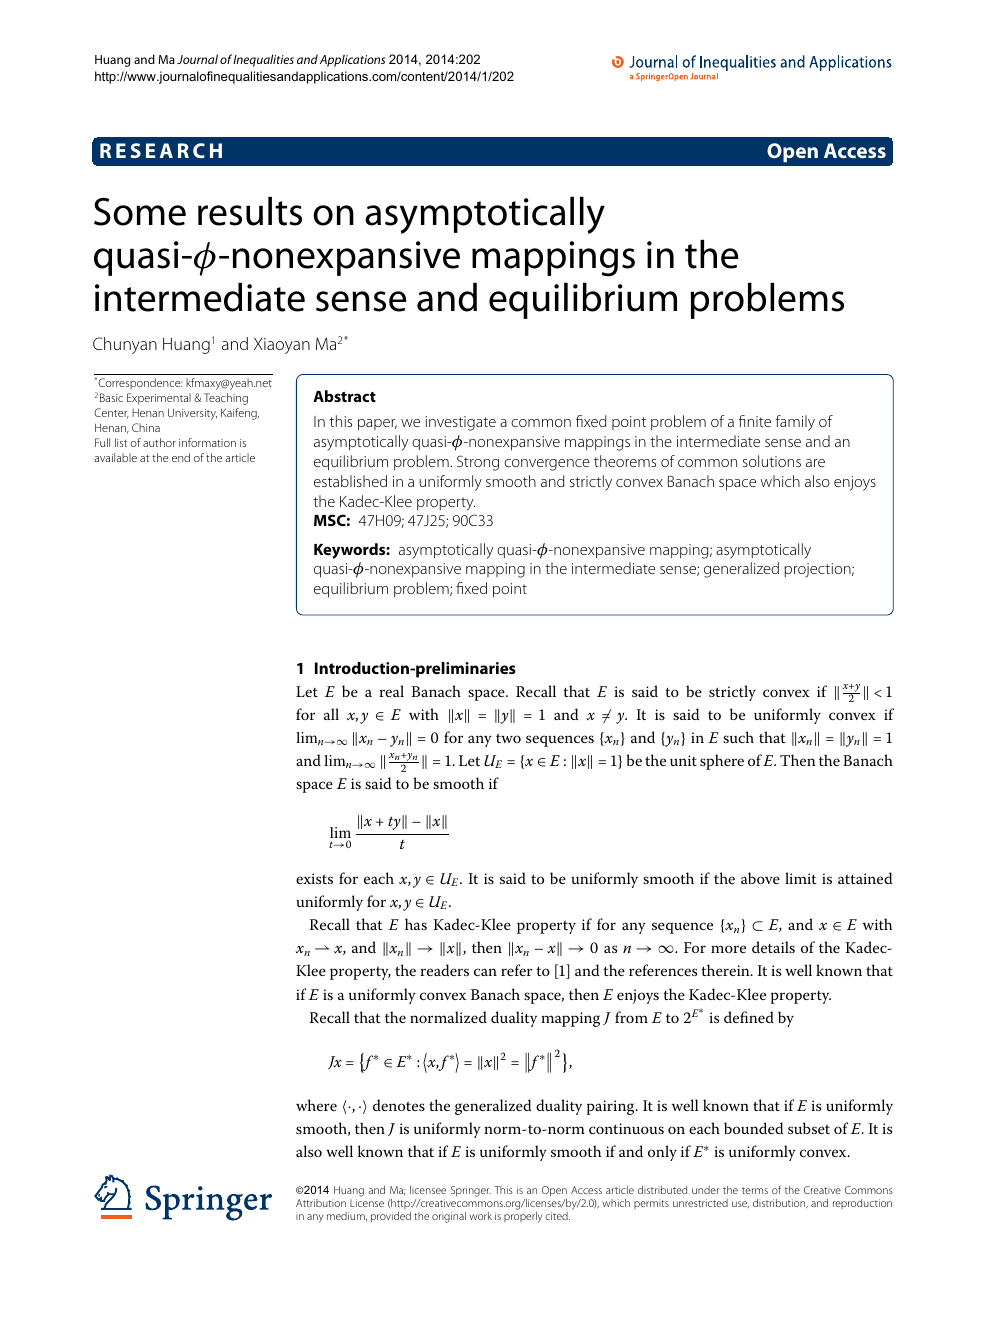 Some results on asymptotically quasi-ϕ-nonexpansive mappings